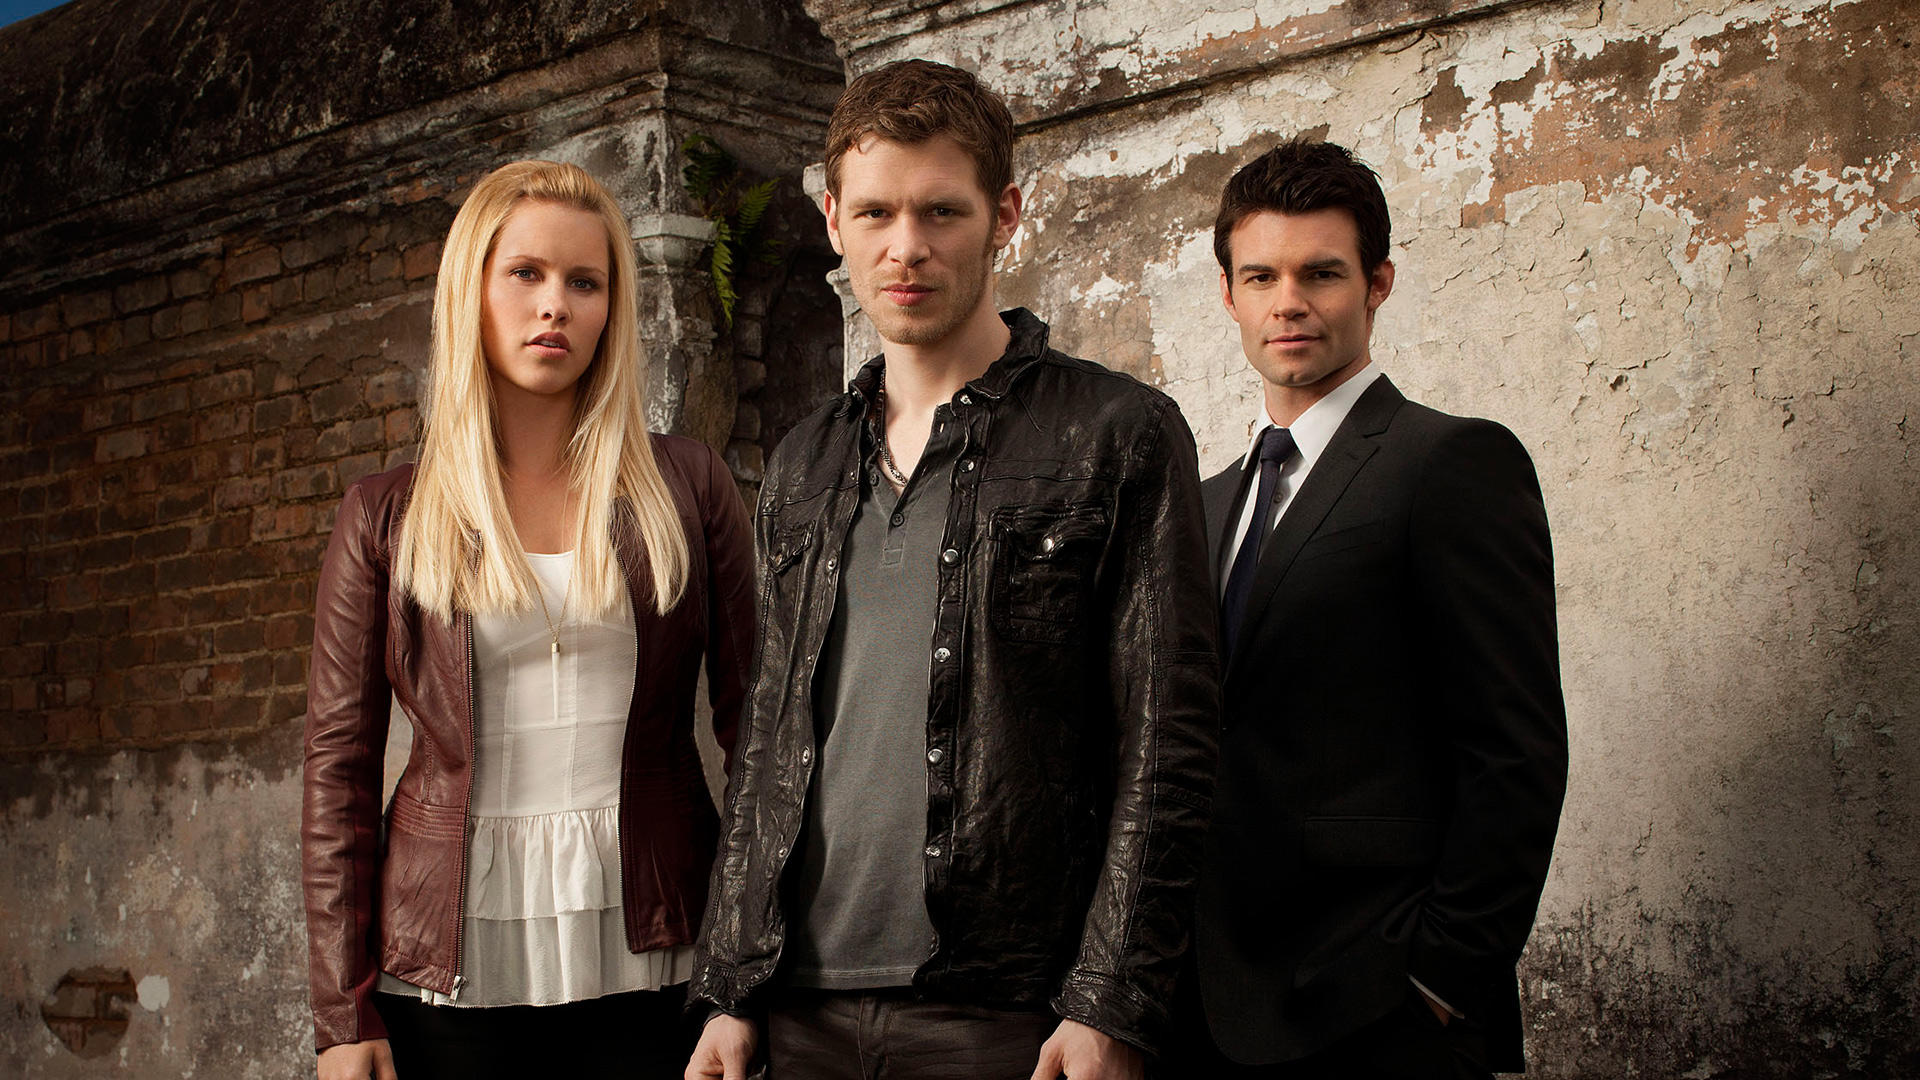 The-Originals-Wallpaper-the-originals-36002532-1920-1080.jpg